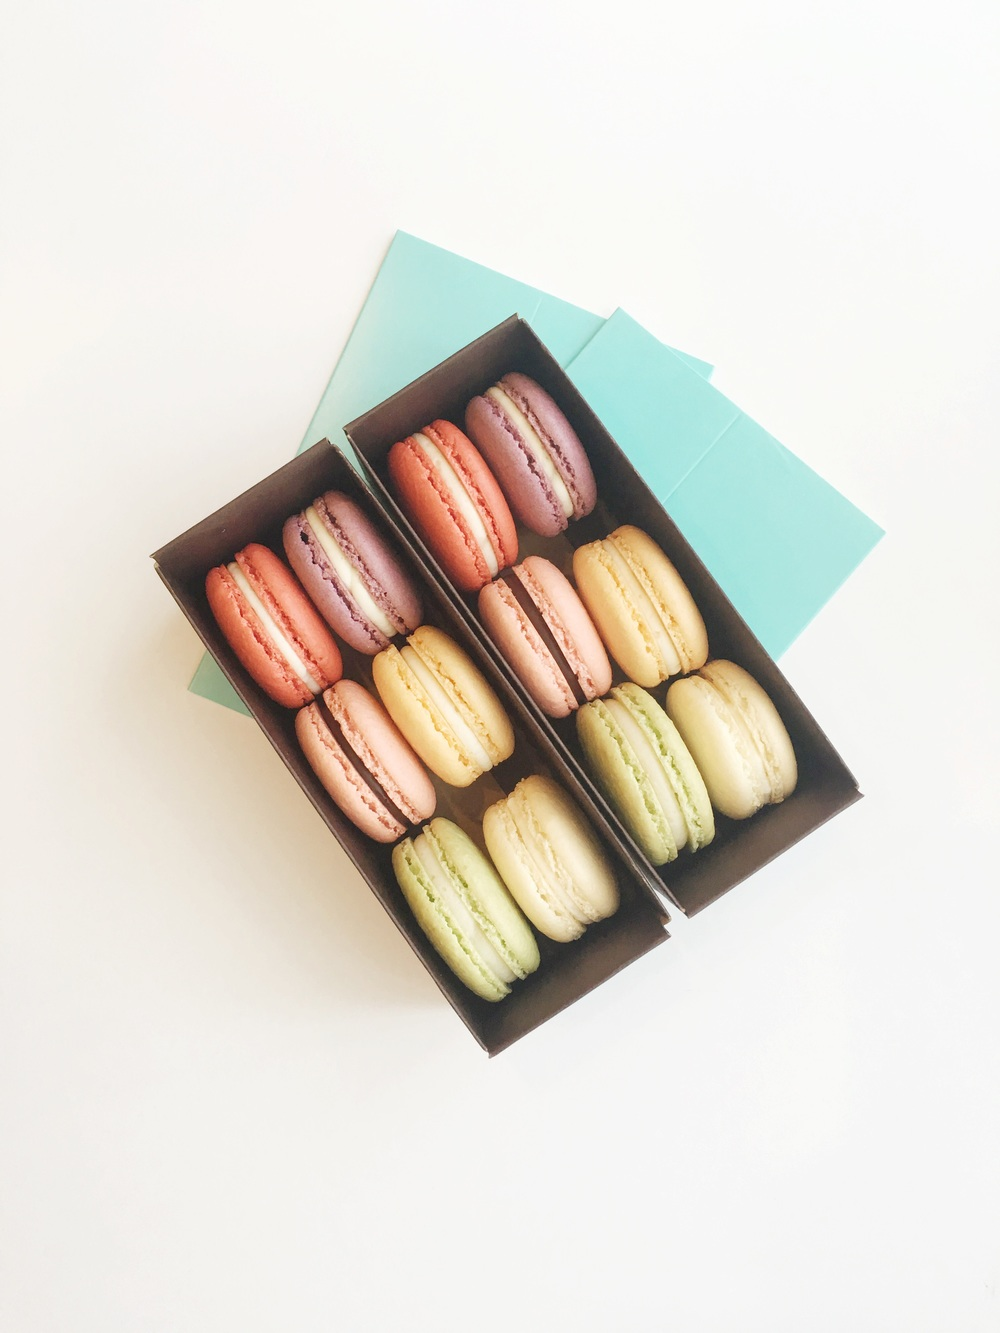 Macarons will be available every day in new fun flavors!